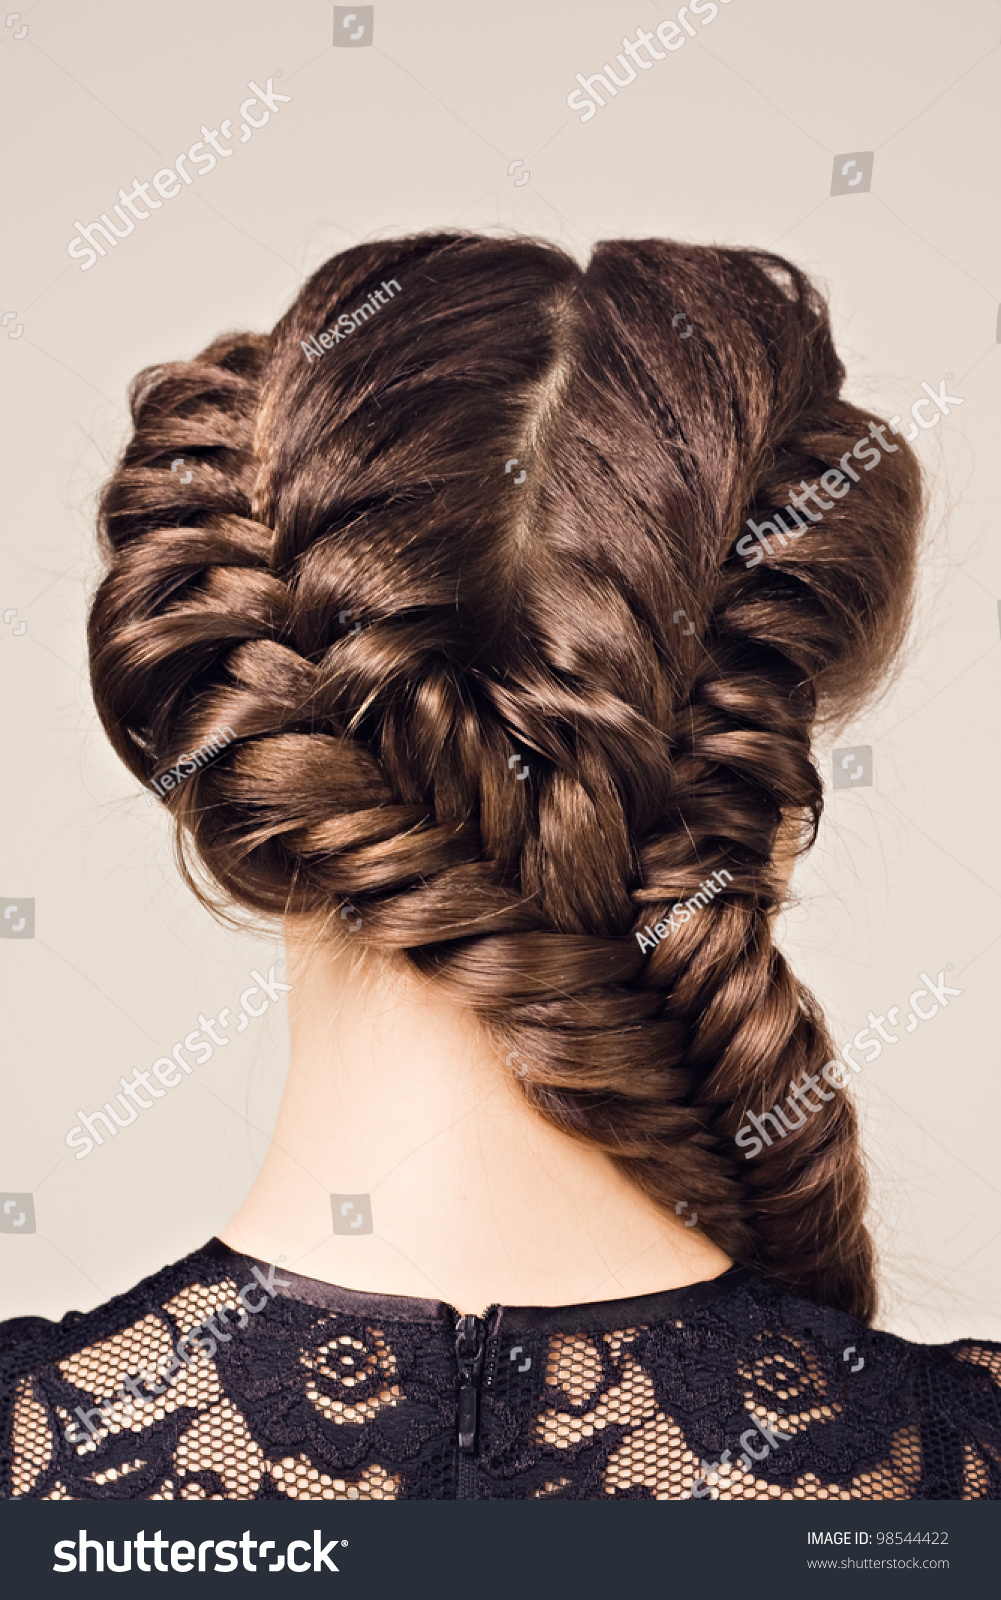 Stupendous Hairstyle Portrait Of Beautiful Brunette Girl With Creative Braid Hairstyles For Women Draintrainus